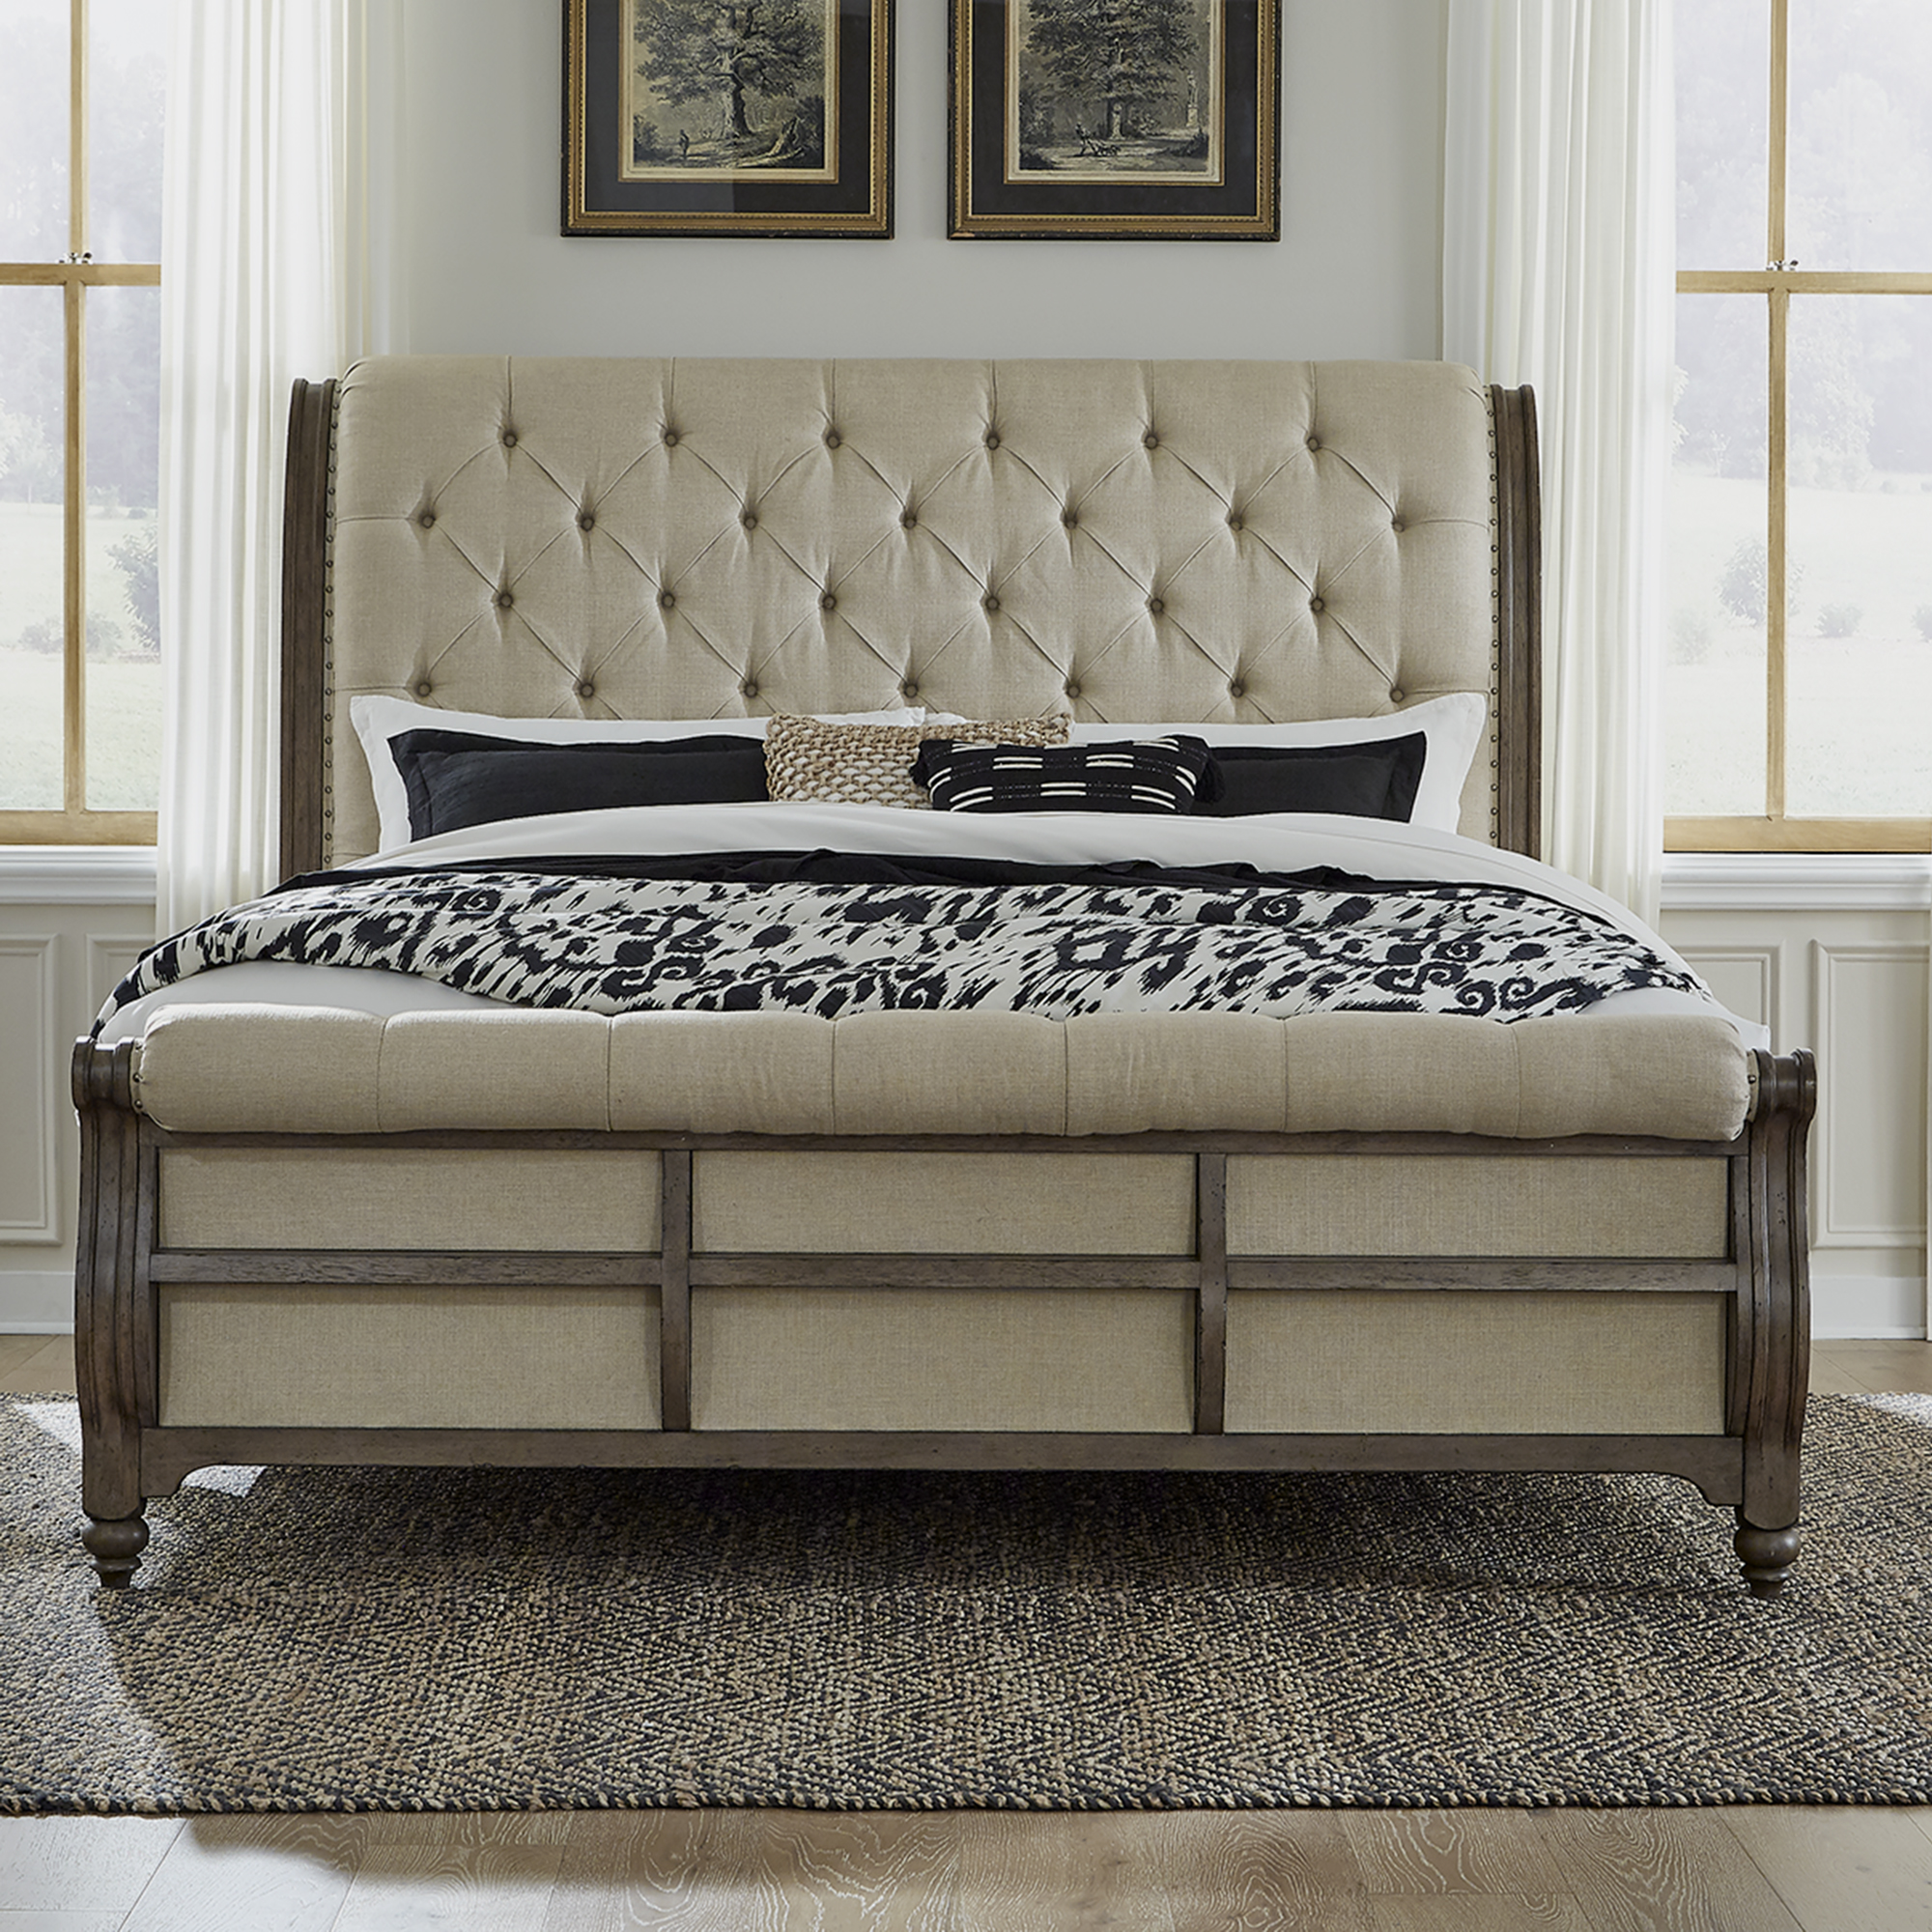 Americana Farmhouse Queen Sleigh Bed by Liberty Furniture at Dream Home Interiors